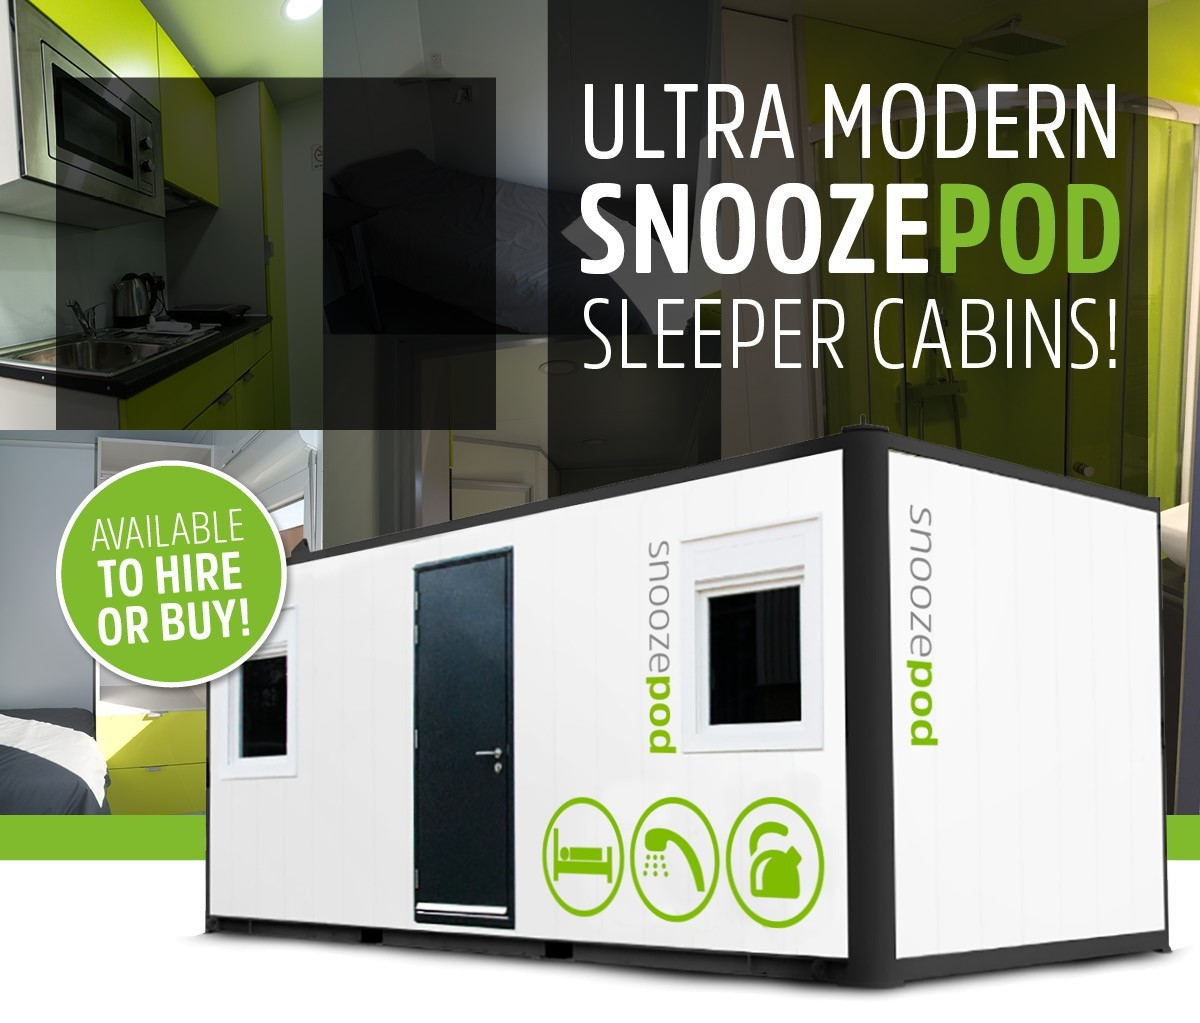 snoozepod sleeper cabin